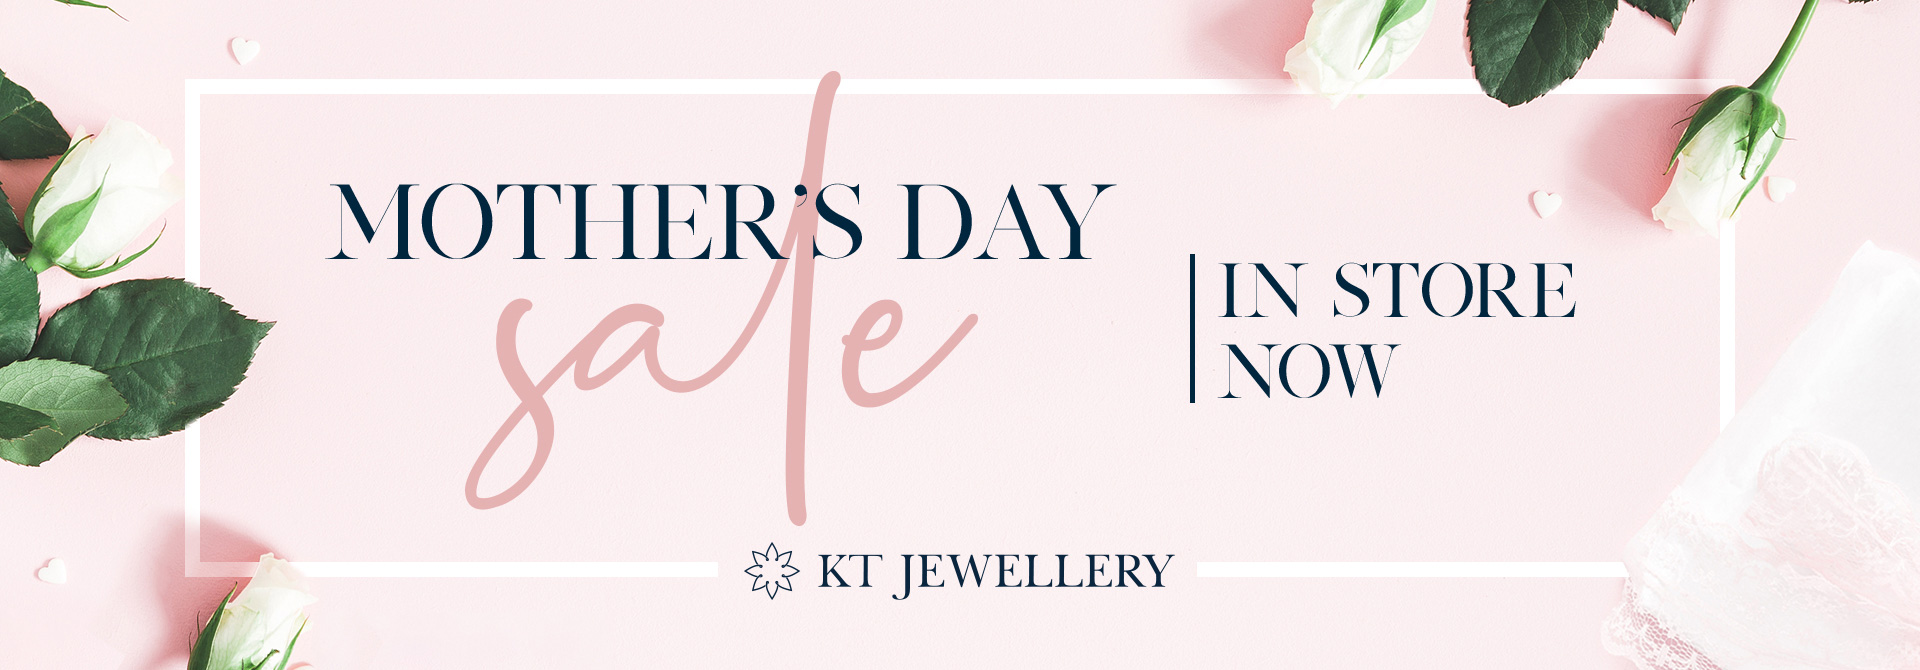 Mother's Day sale in store now